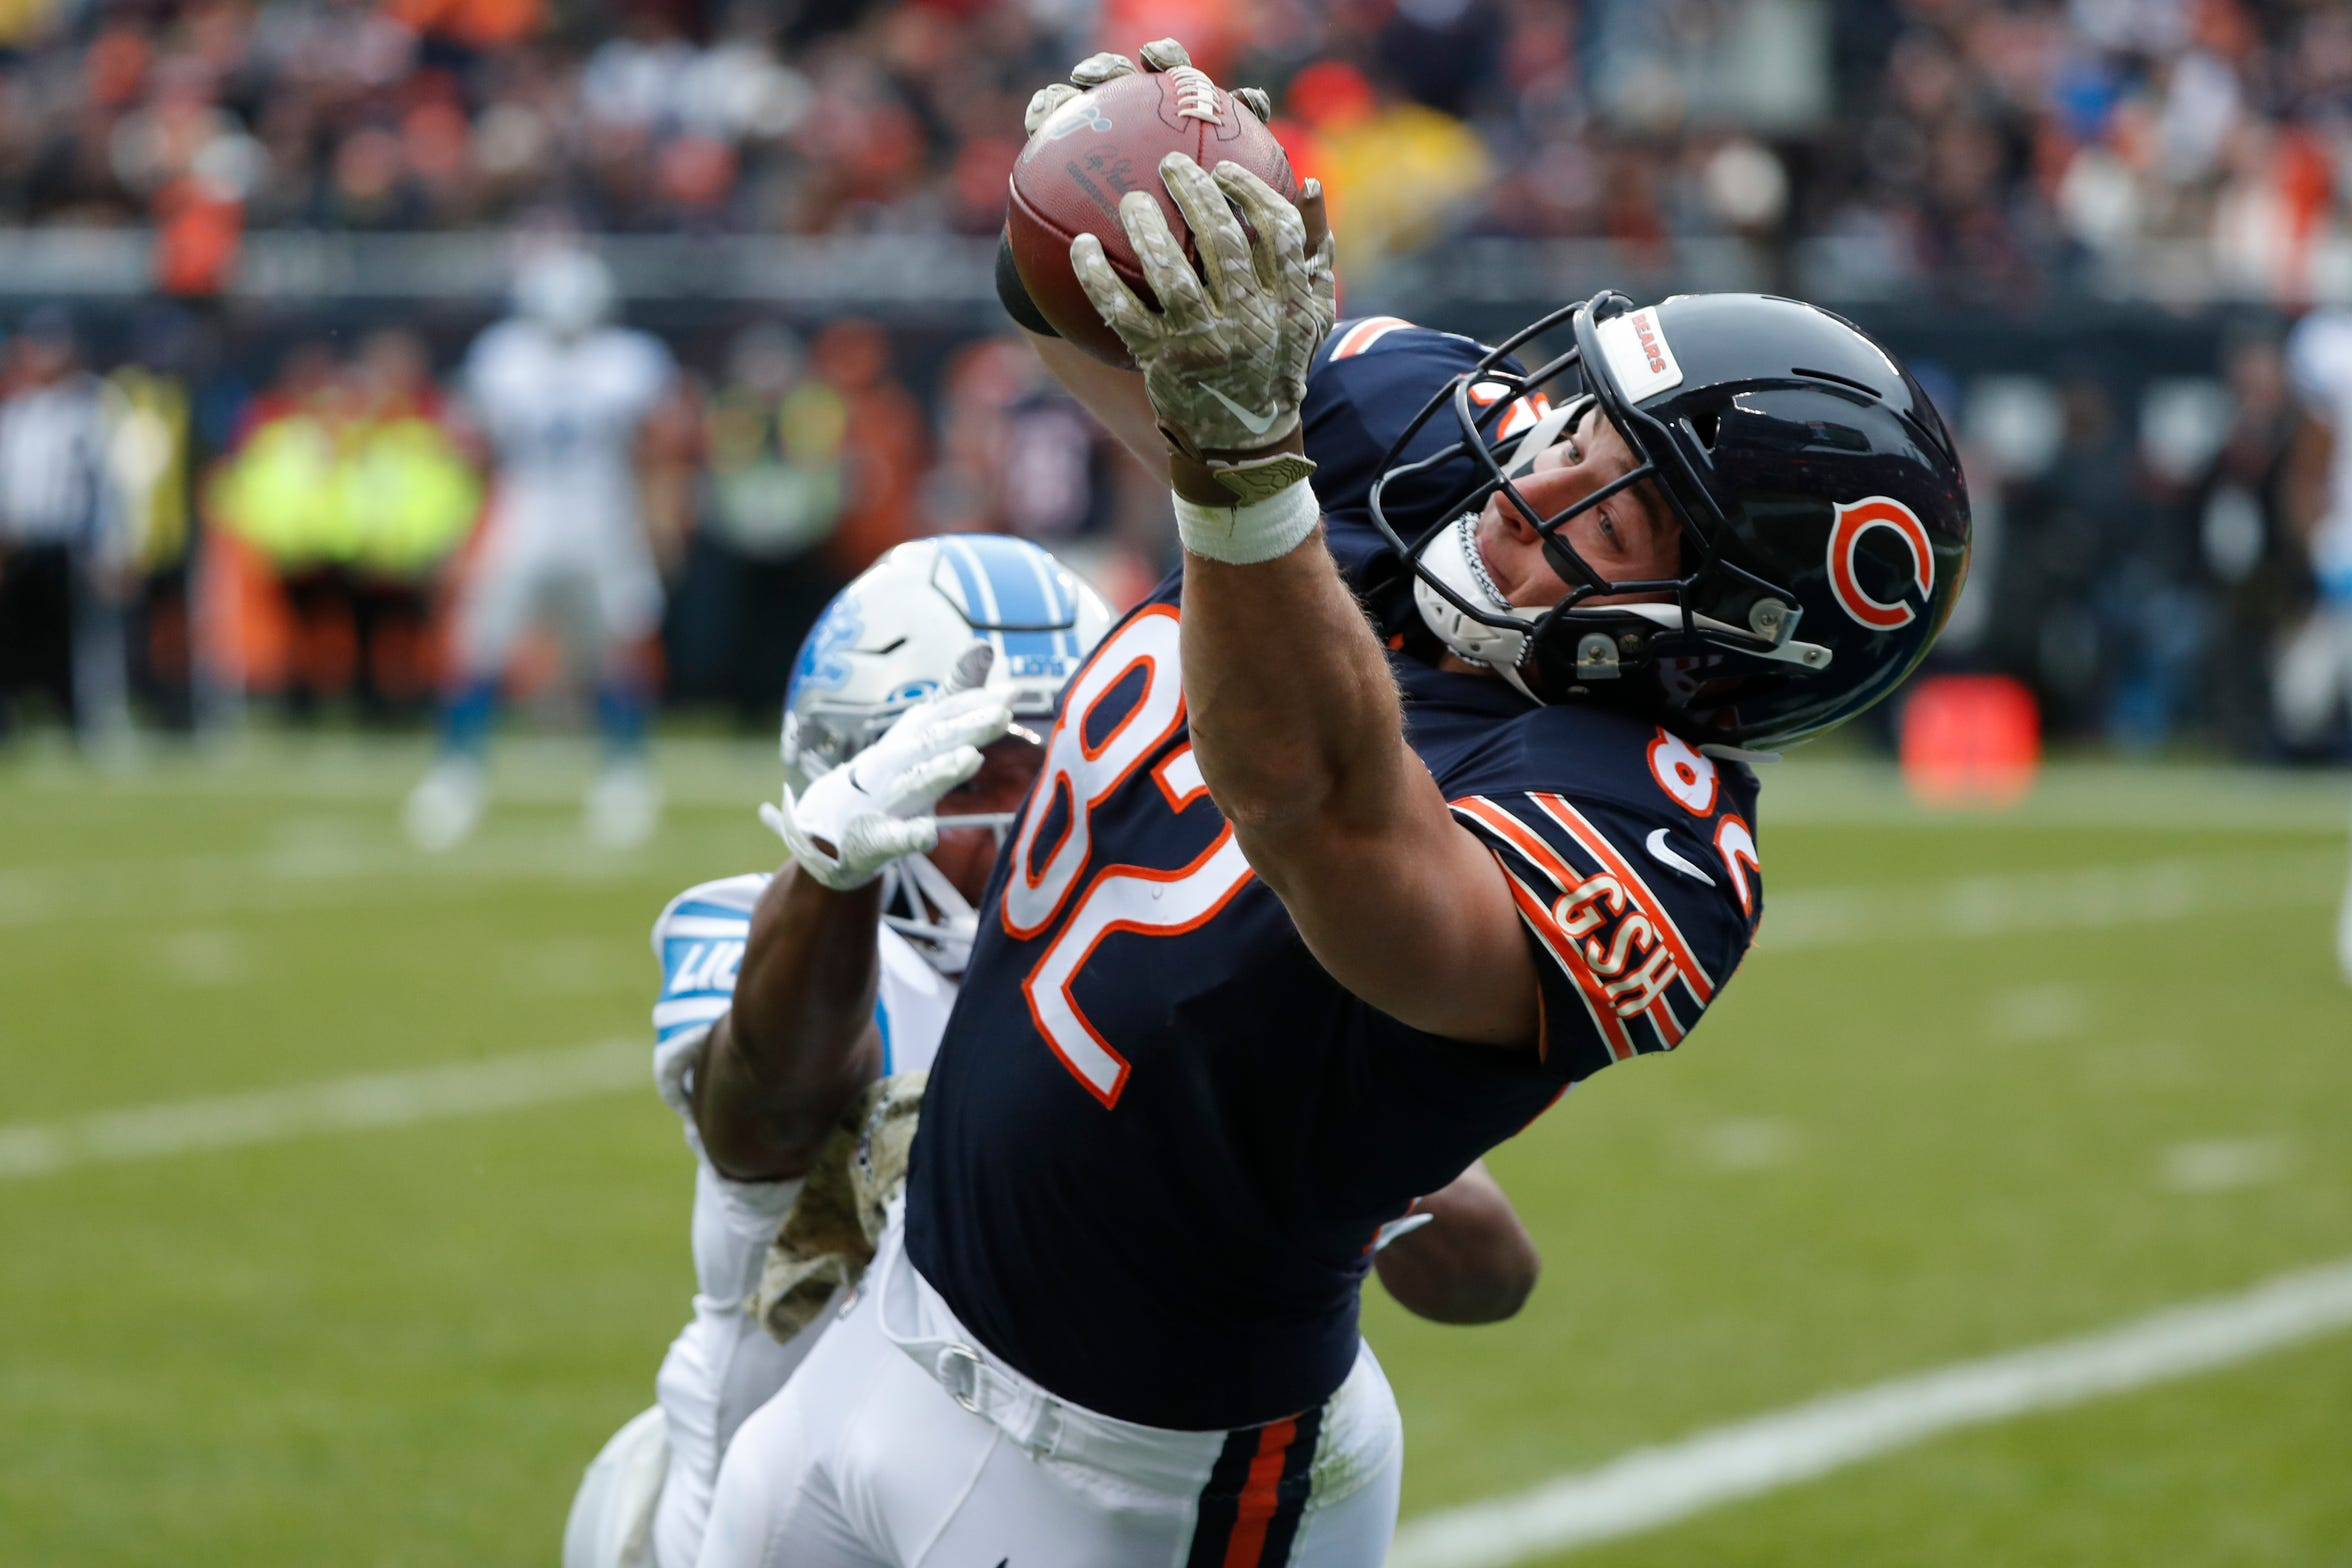 Bears tight end Ben Braunecker catches an 18-yard touchdown pass as Lions cornerback Rashaan Melvin defends during the first half of on Sunday, Nov. 10, 2019, in Chicago.